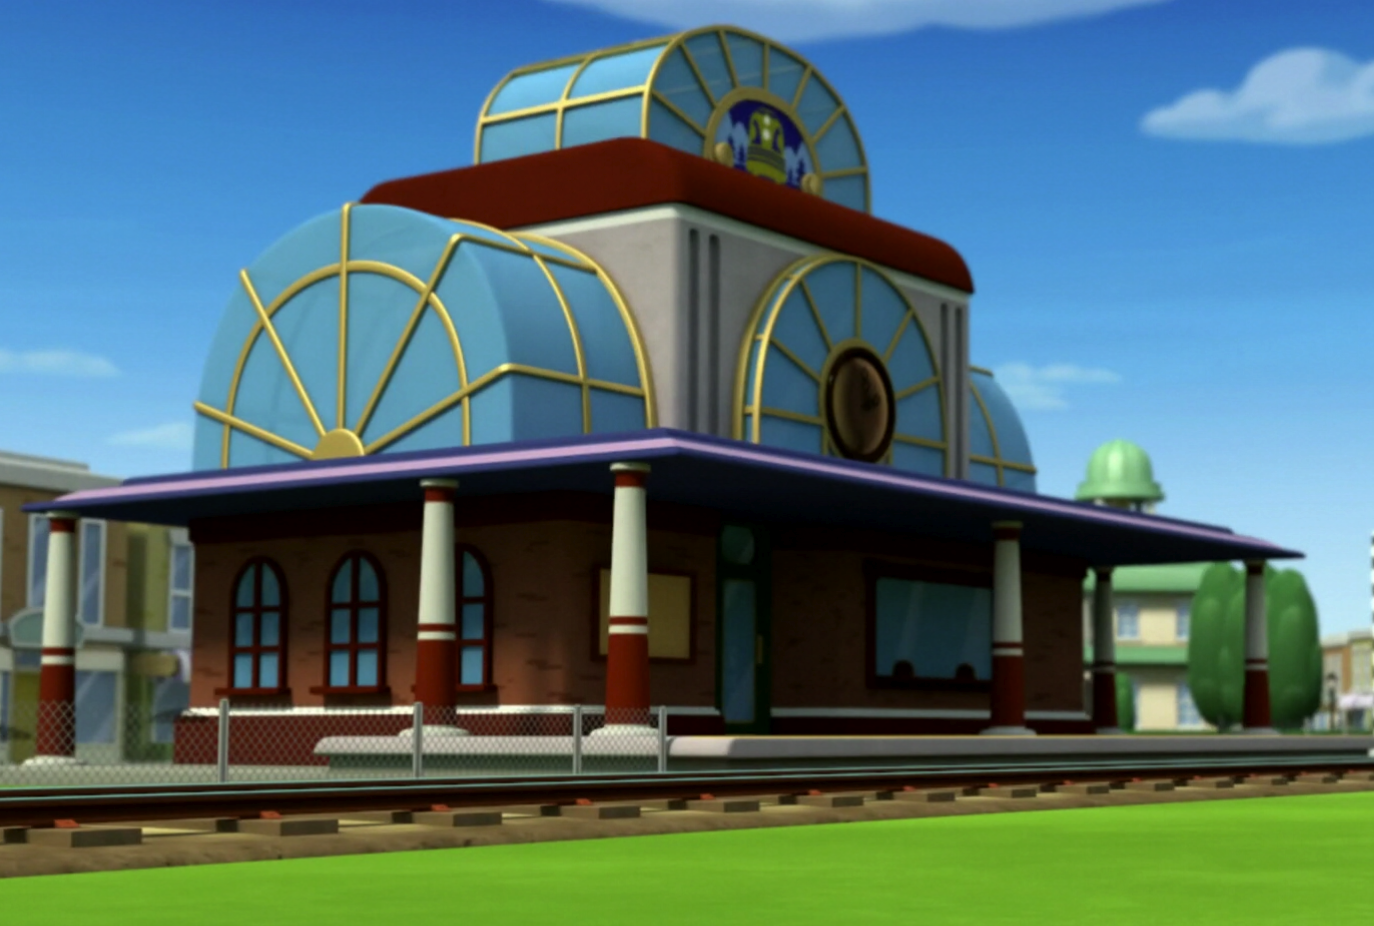 Train Station Paw Patrol Wiki Fandom Powered By Wikia